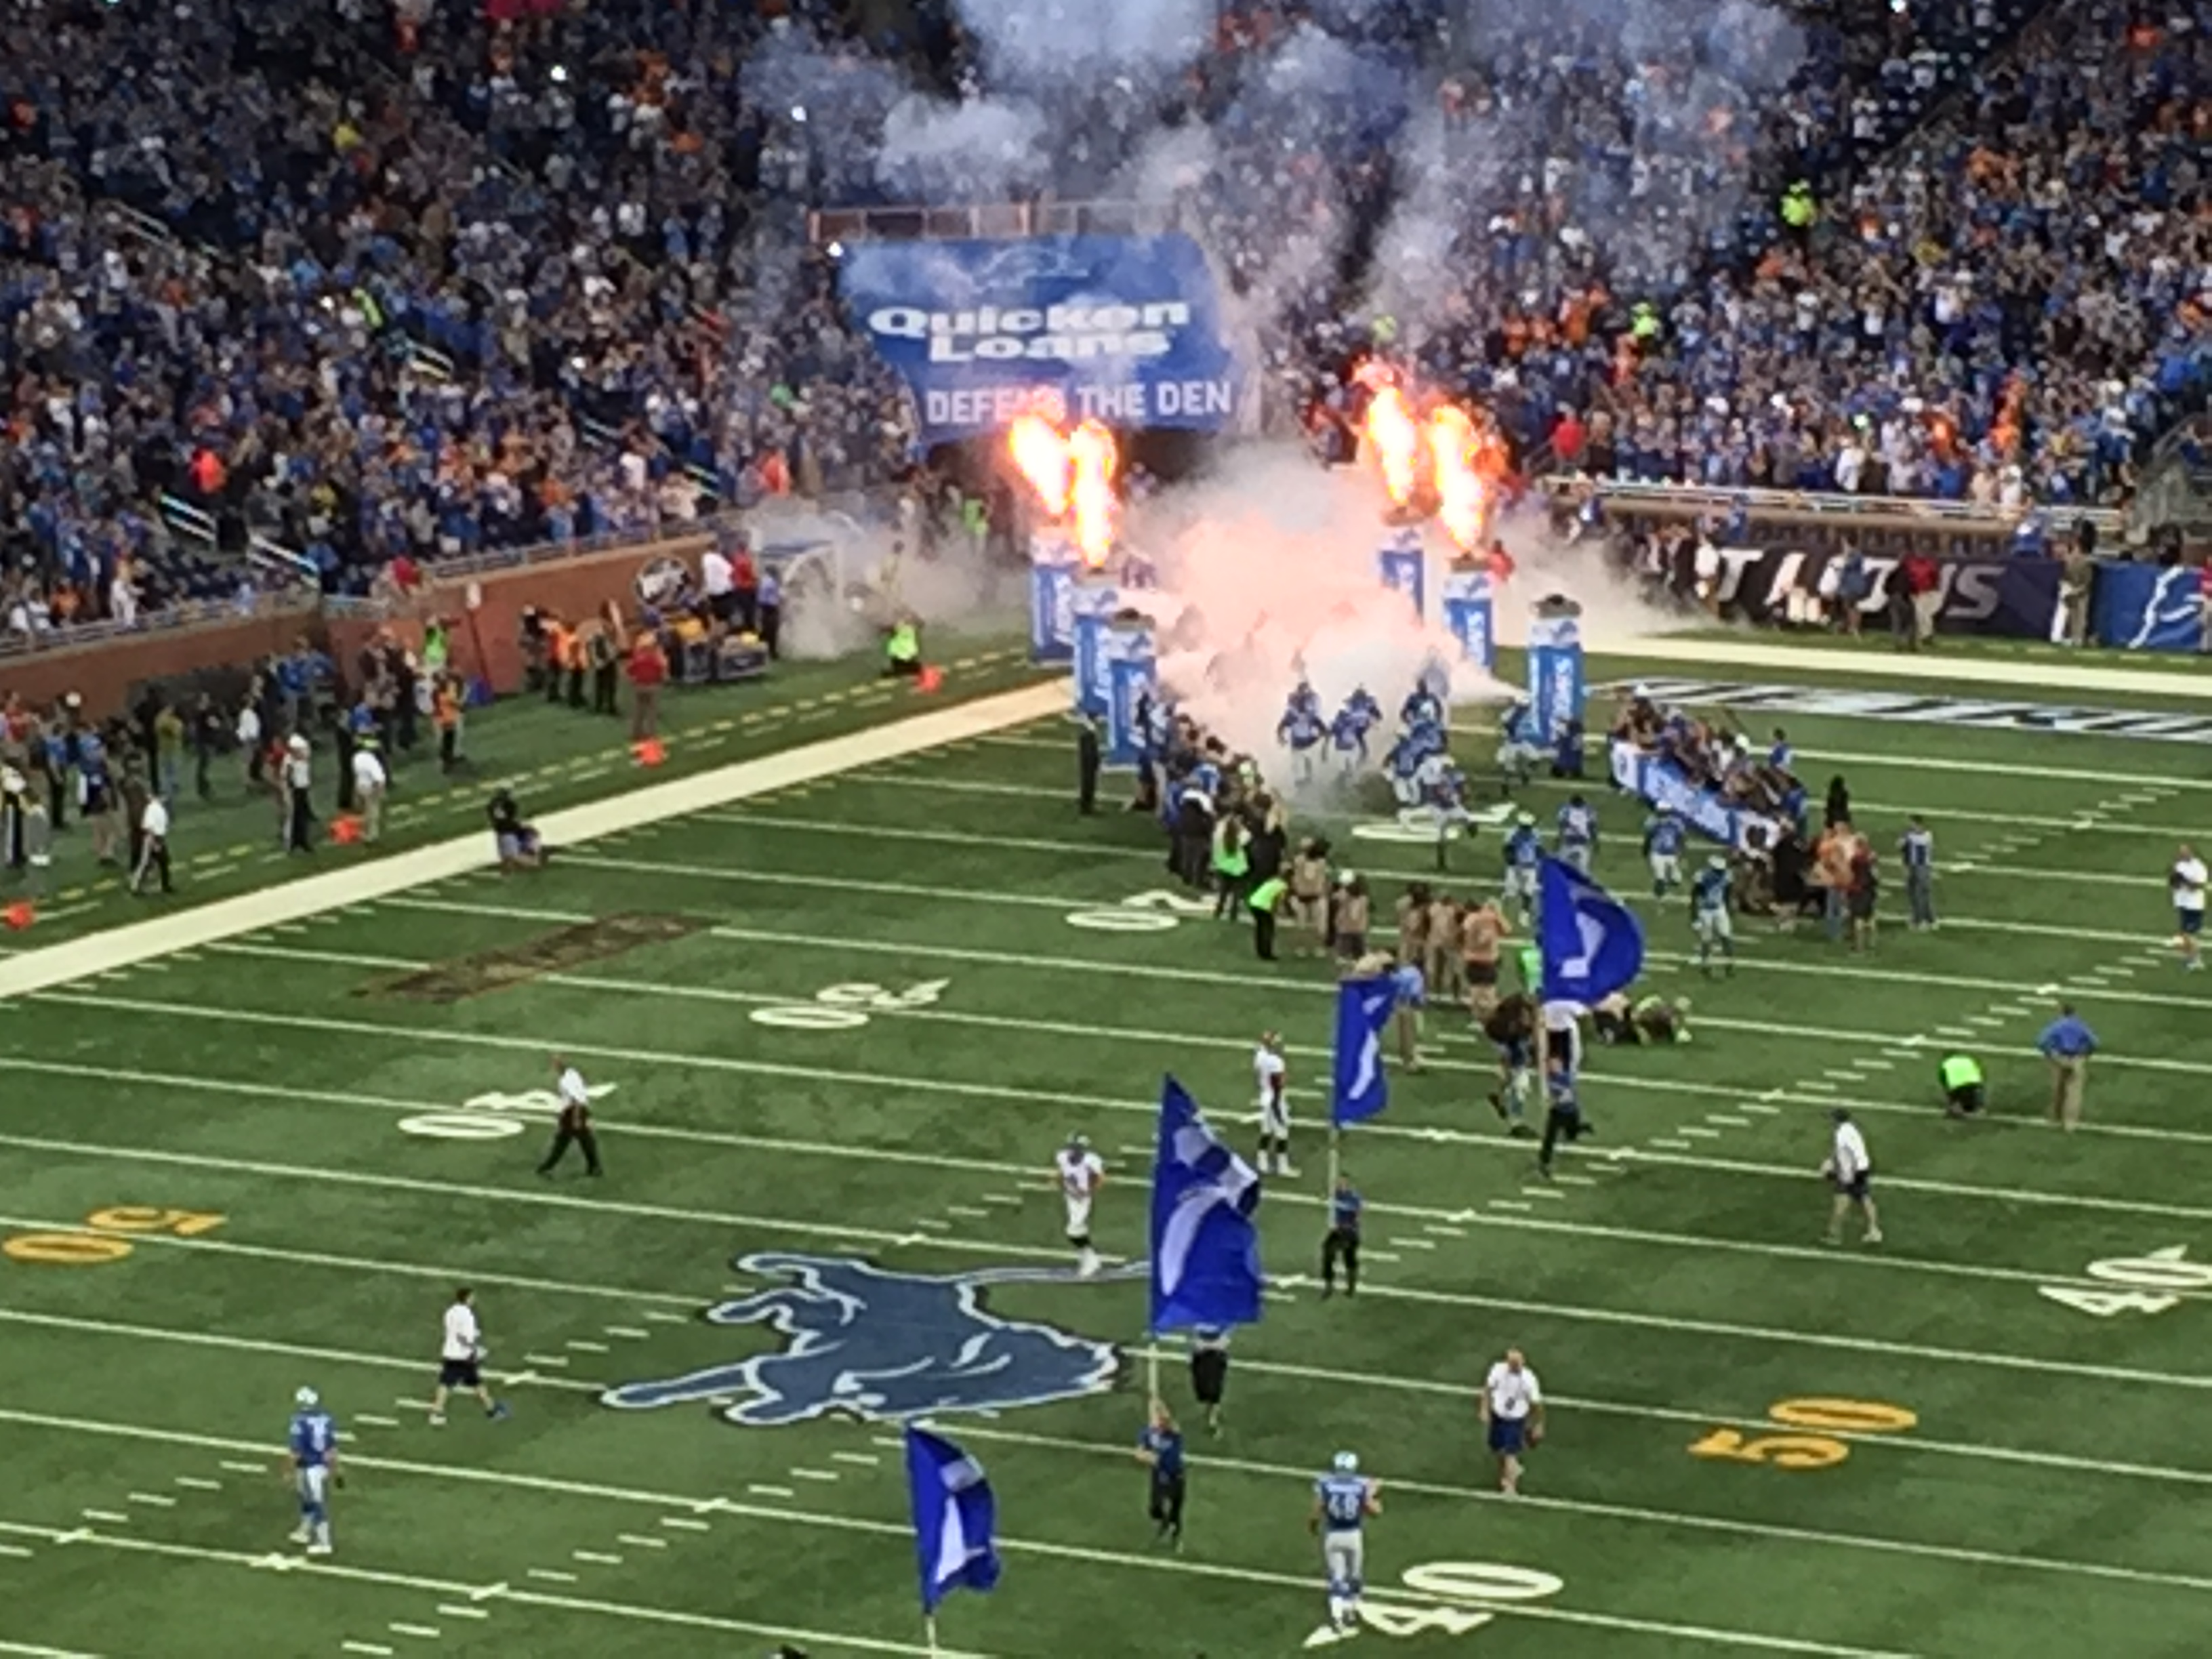 Members of the Detroit Lions run out of the tunnel at Ford Field. (Photo by Mike James)